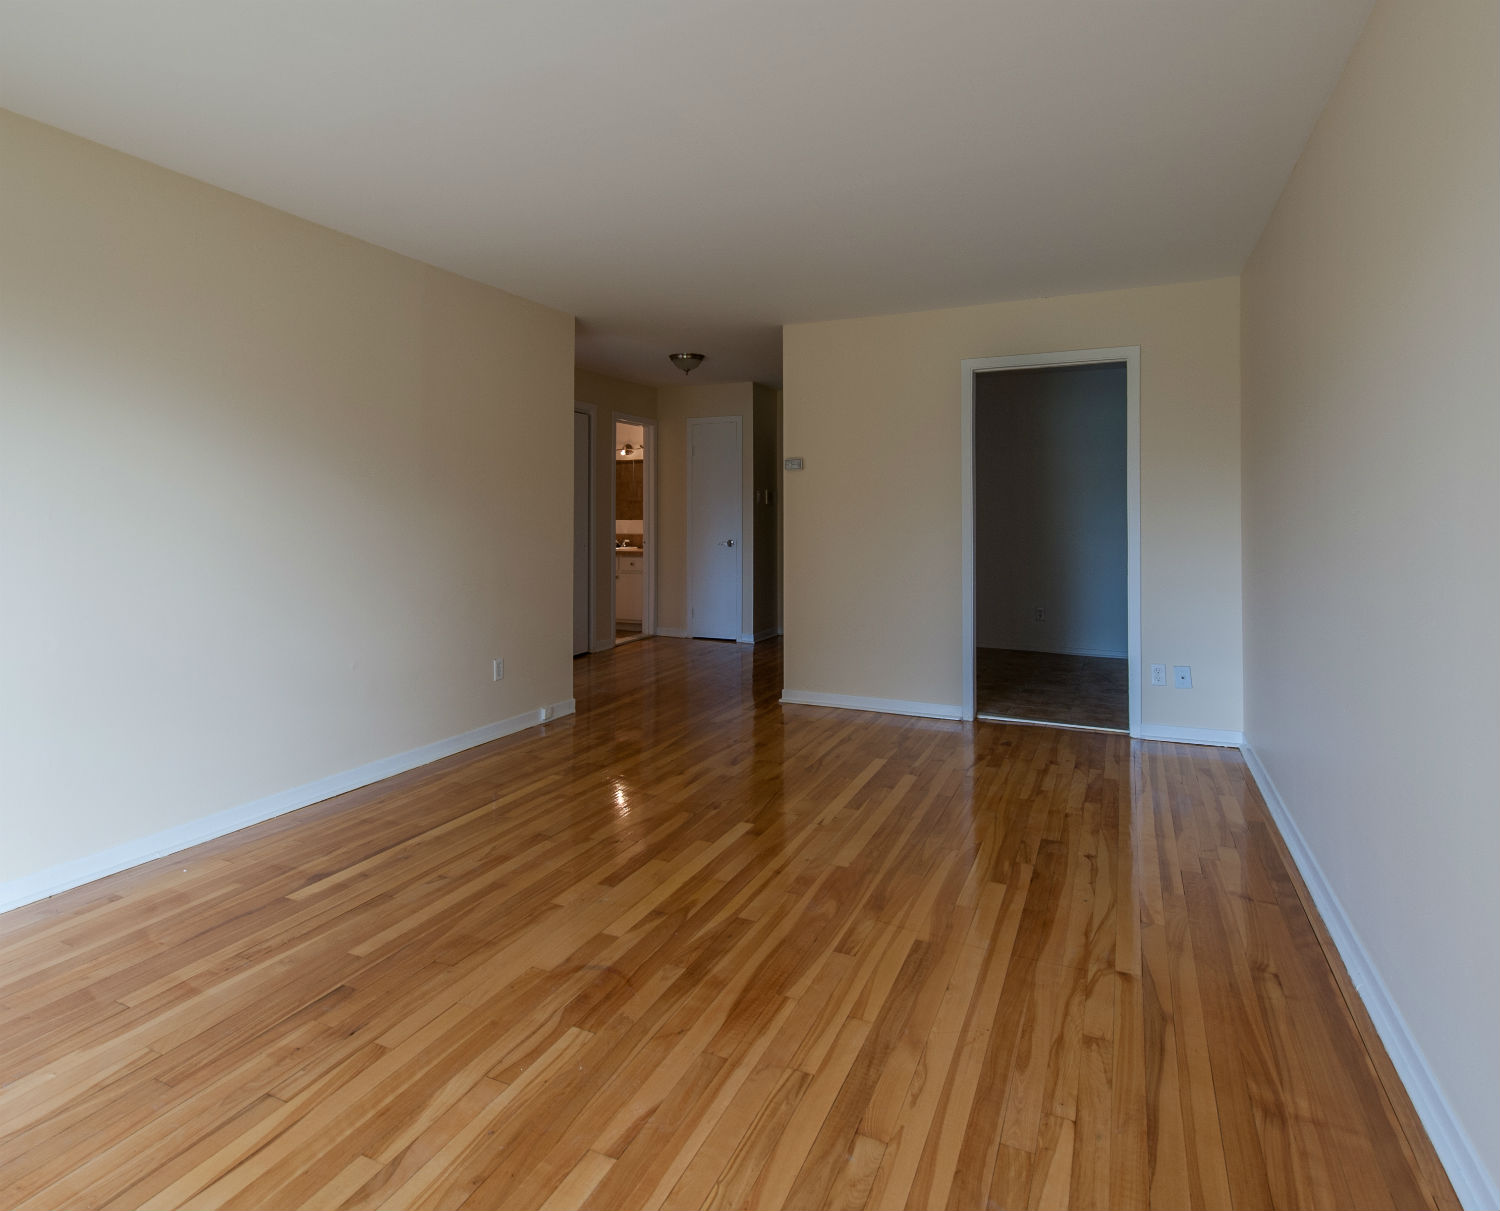 1 bedroom Apartments for rent in Pierrefonds-Roxboro at Place Riviera - Photo 09 - RentQuebecApartments – L35788